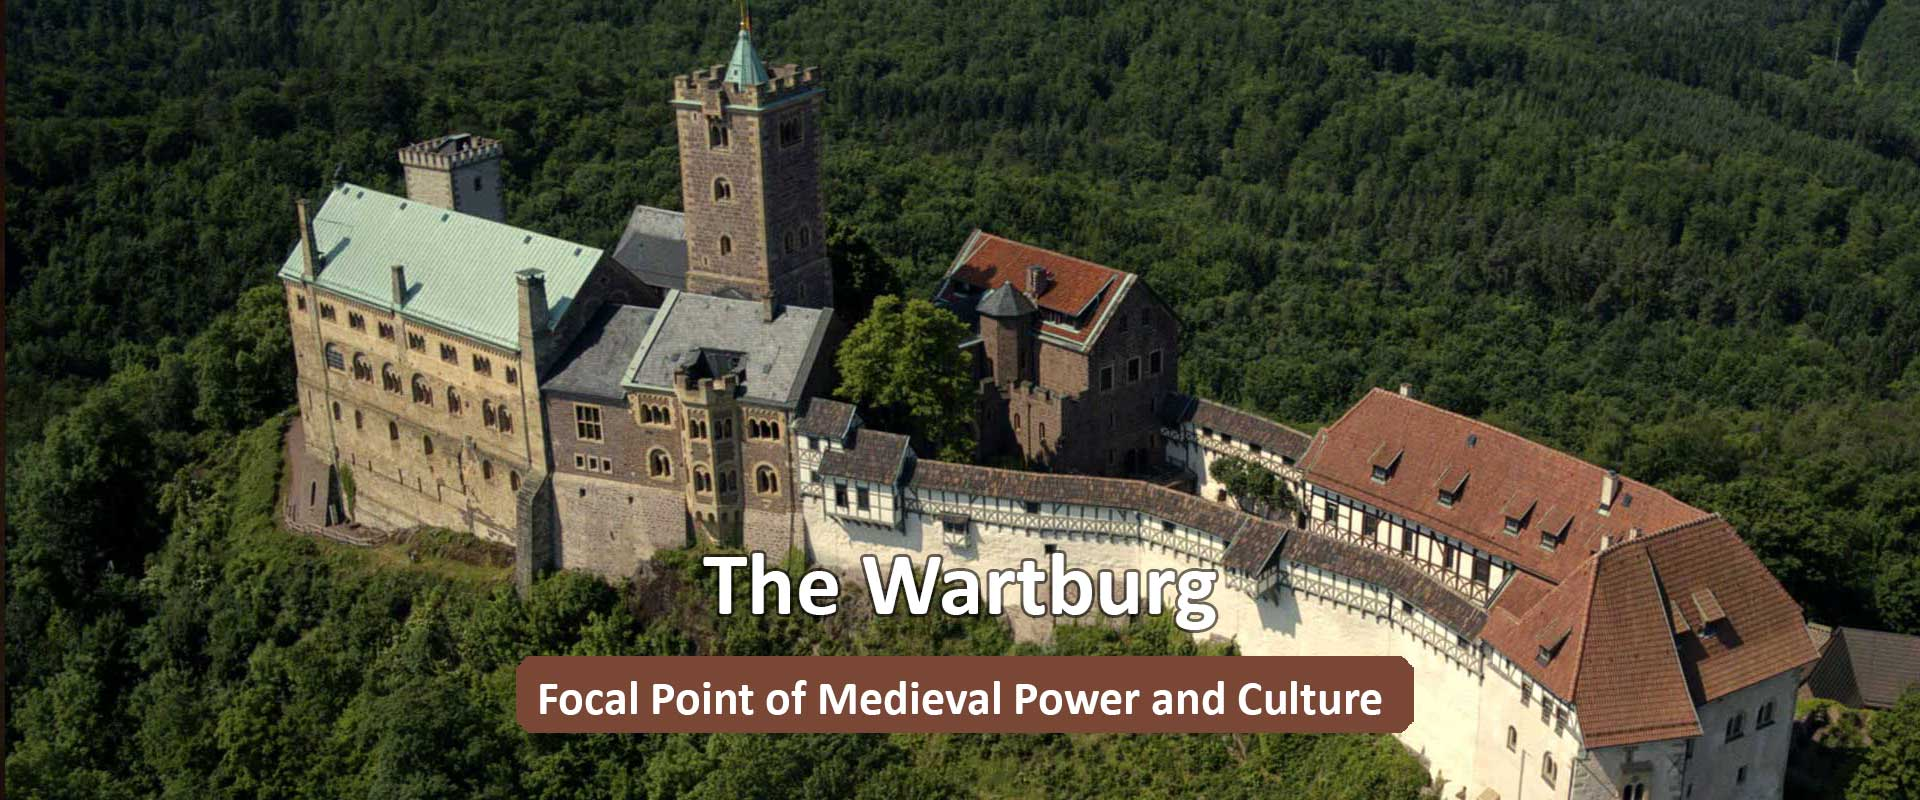 The Wartburg